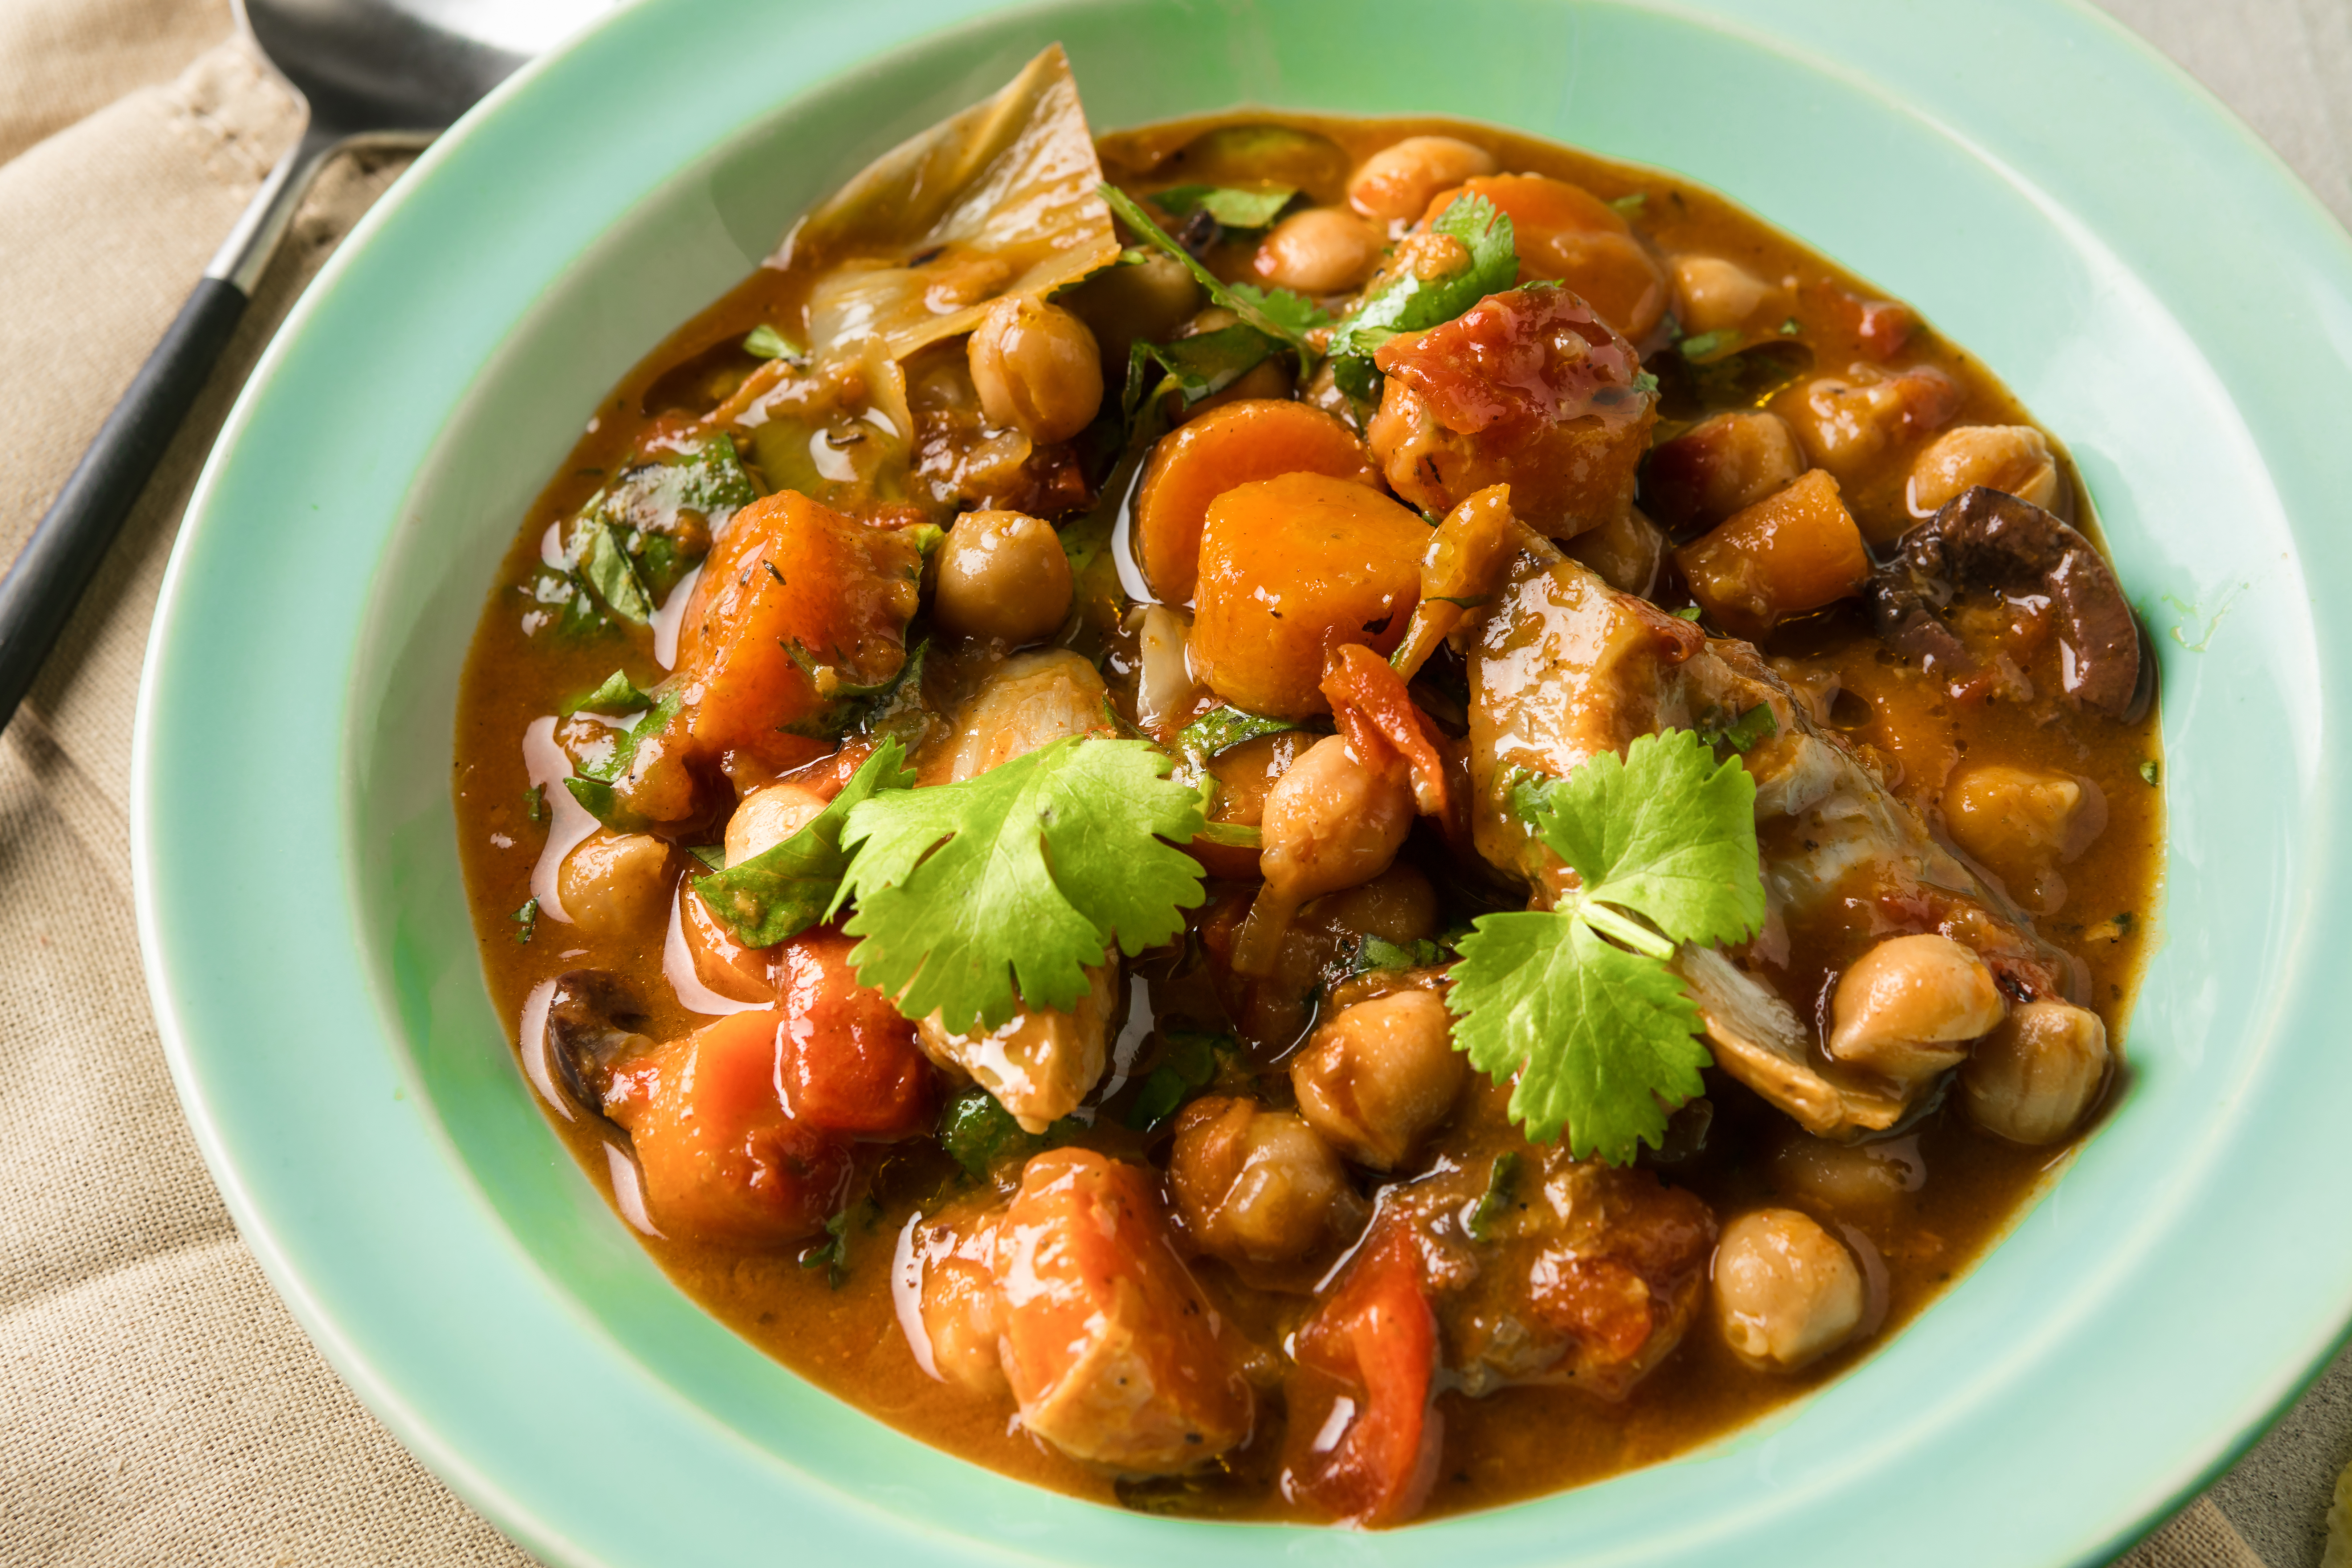 Chickpea and Artichoke Tagine. MUST CREDIT: Photo by Goran Kosanovic for The Washington Post.